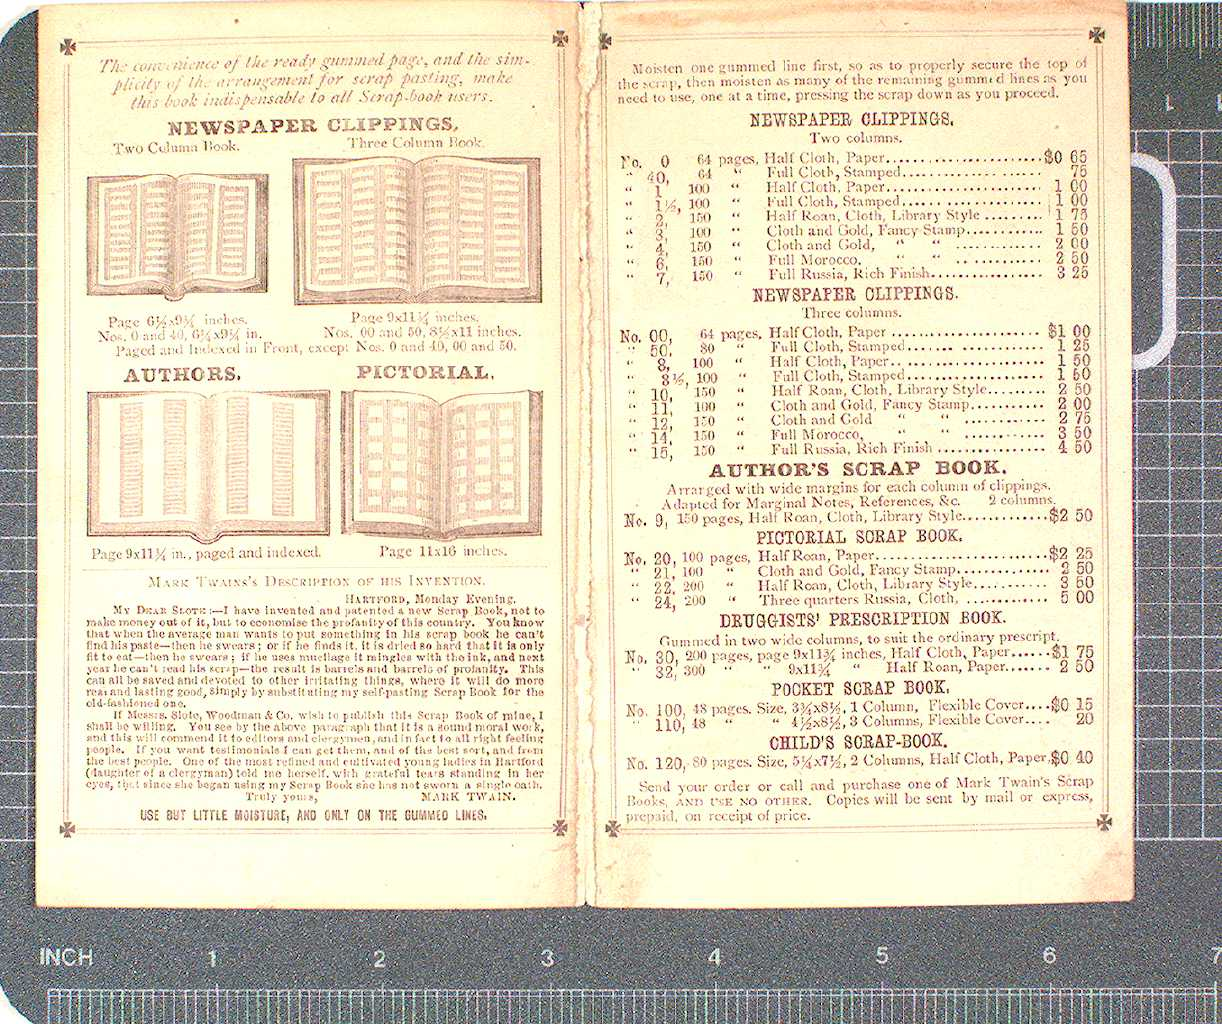 ADVERTISING PAMPHLET: PAGES 2 AND 3